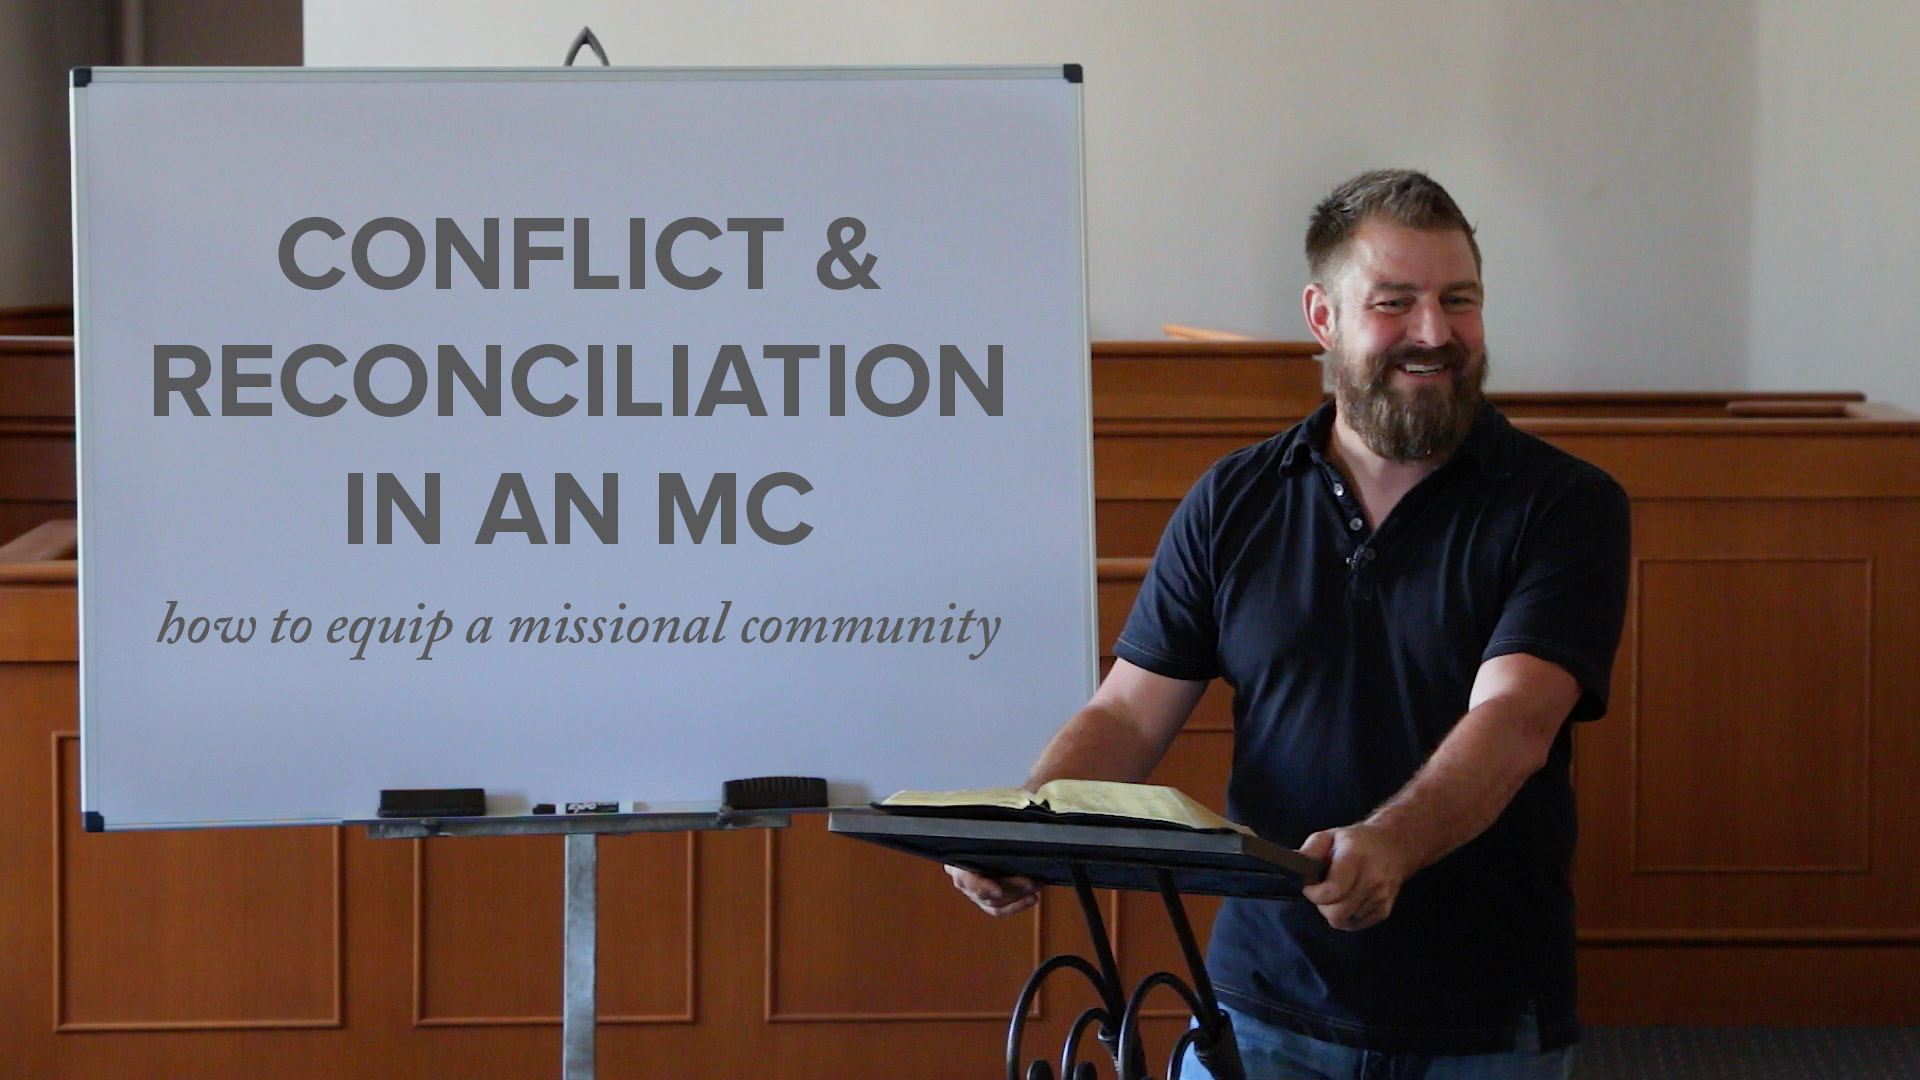 Conflict & Reconciliation in an MC